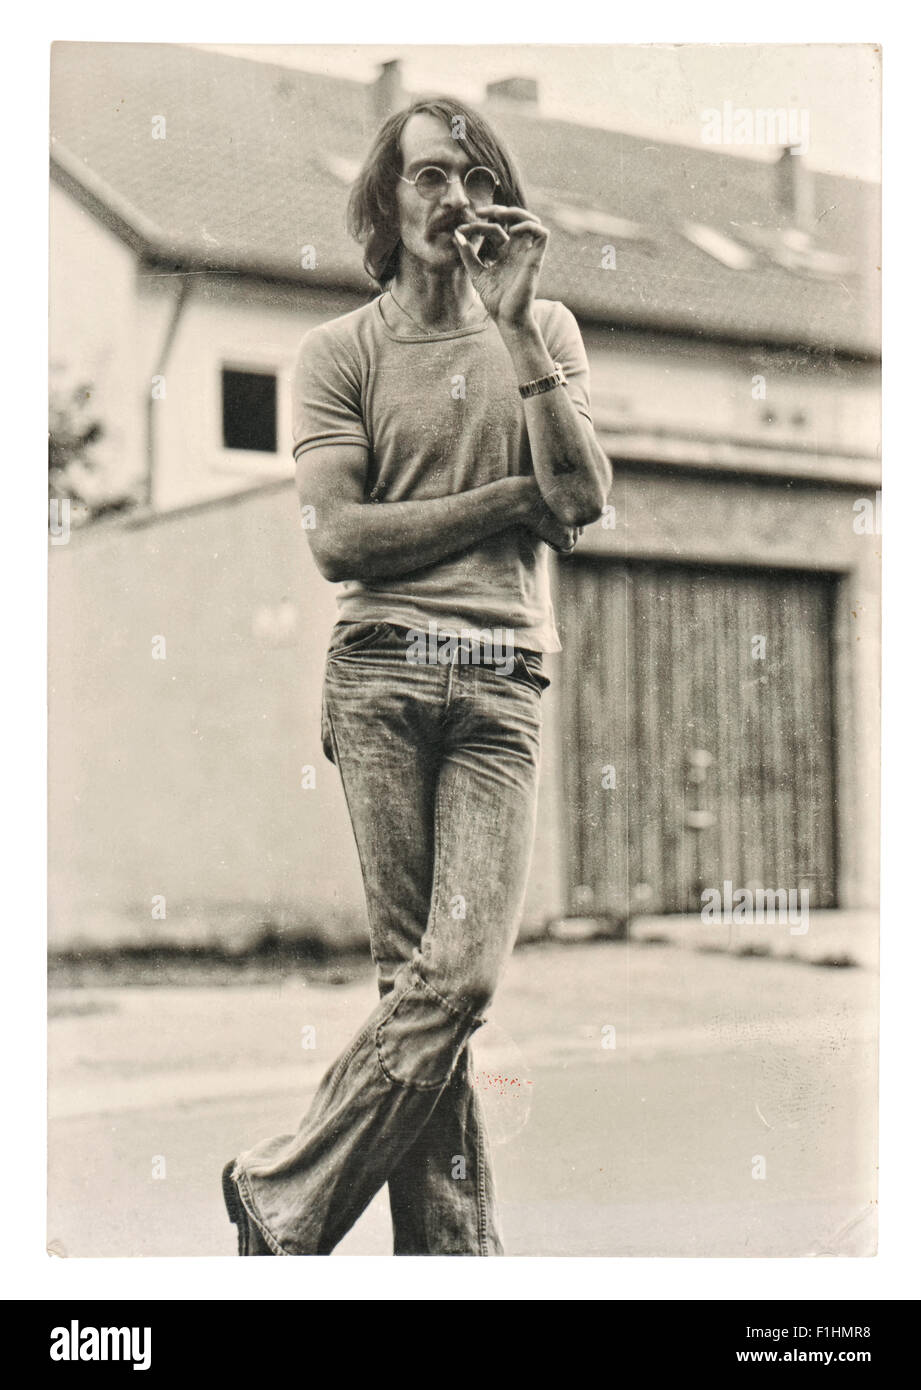 Vintage photo from young fashion smoking man wearing typical 1970s clothing. - Stock Image